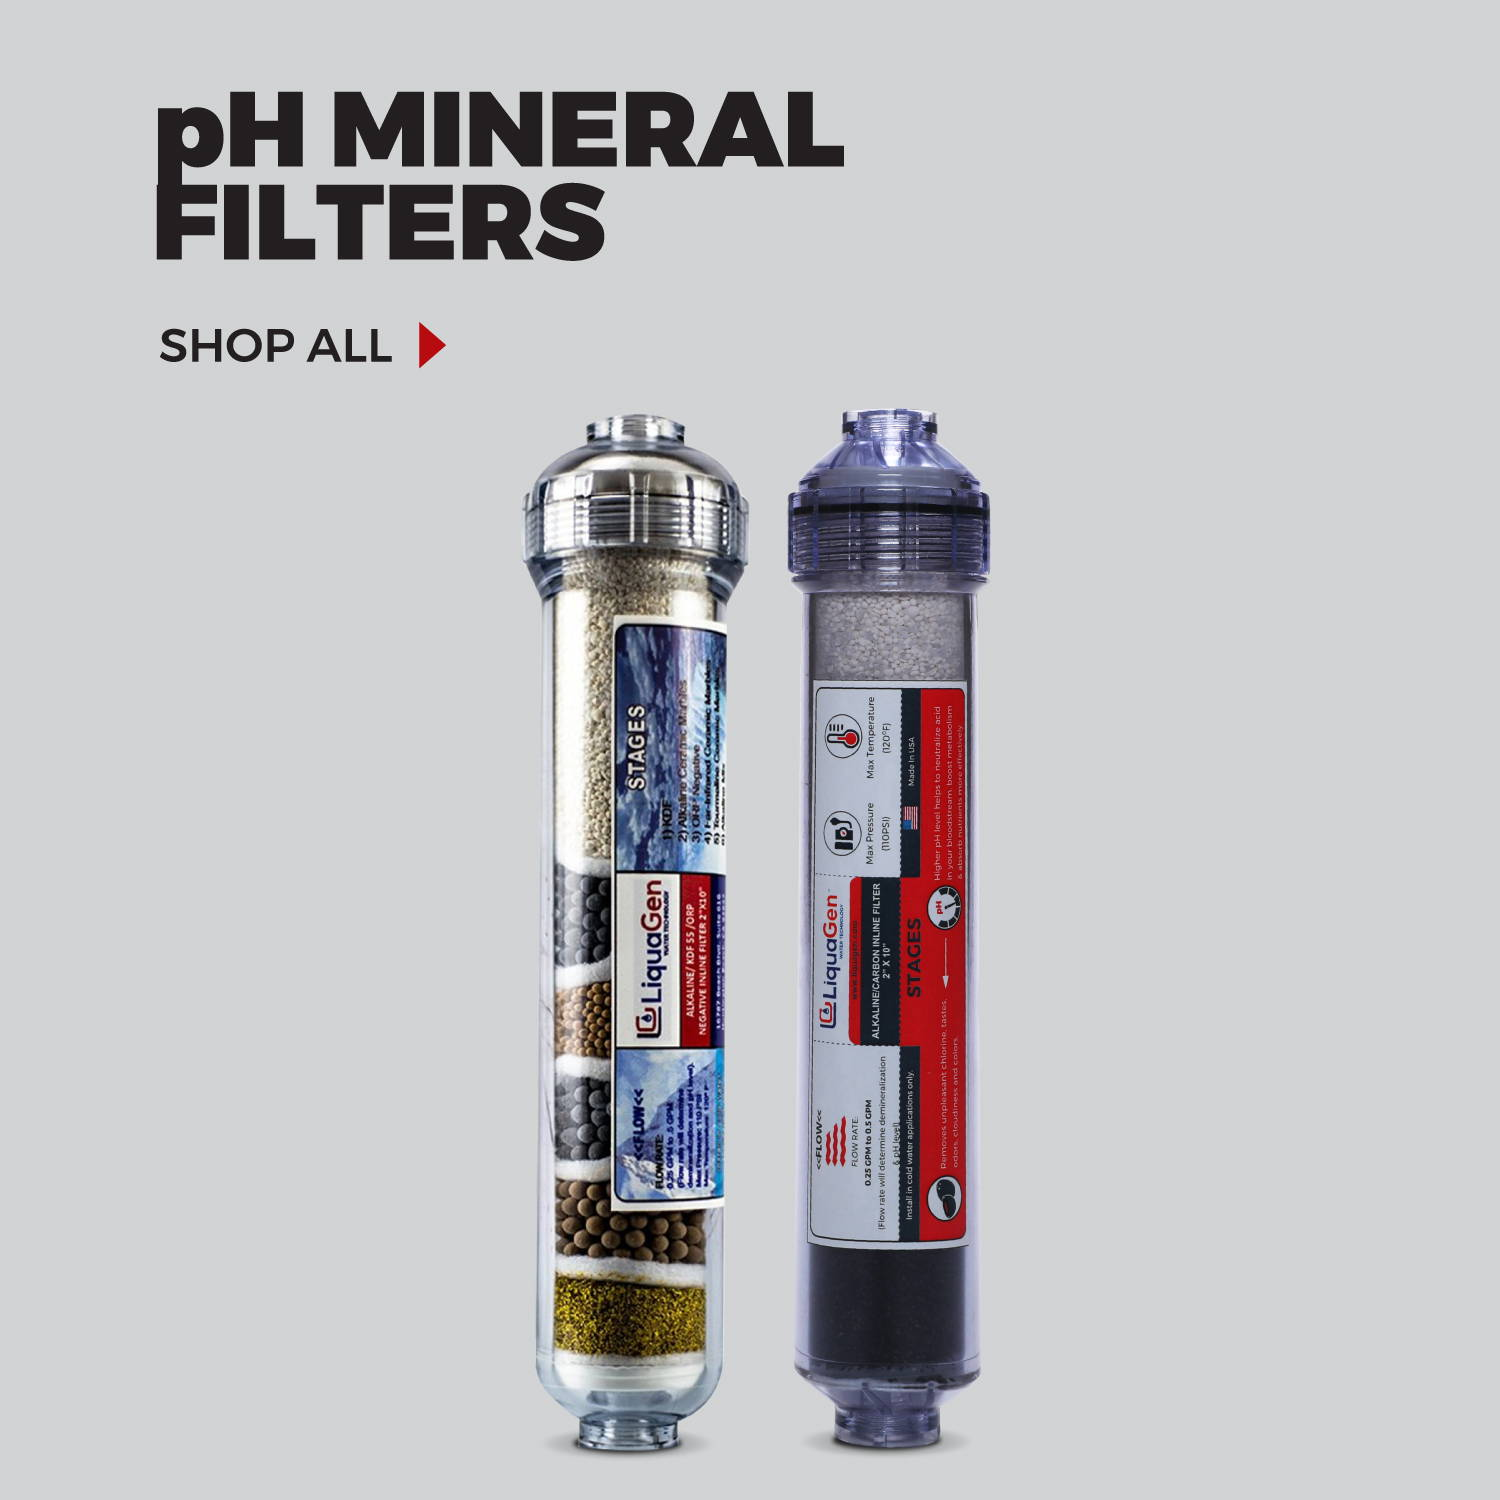 ph mineral filters